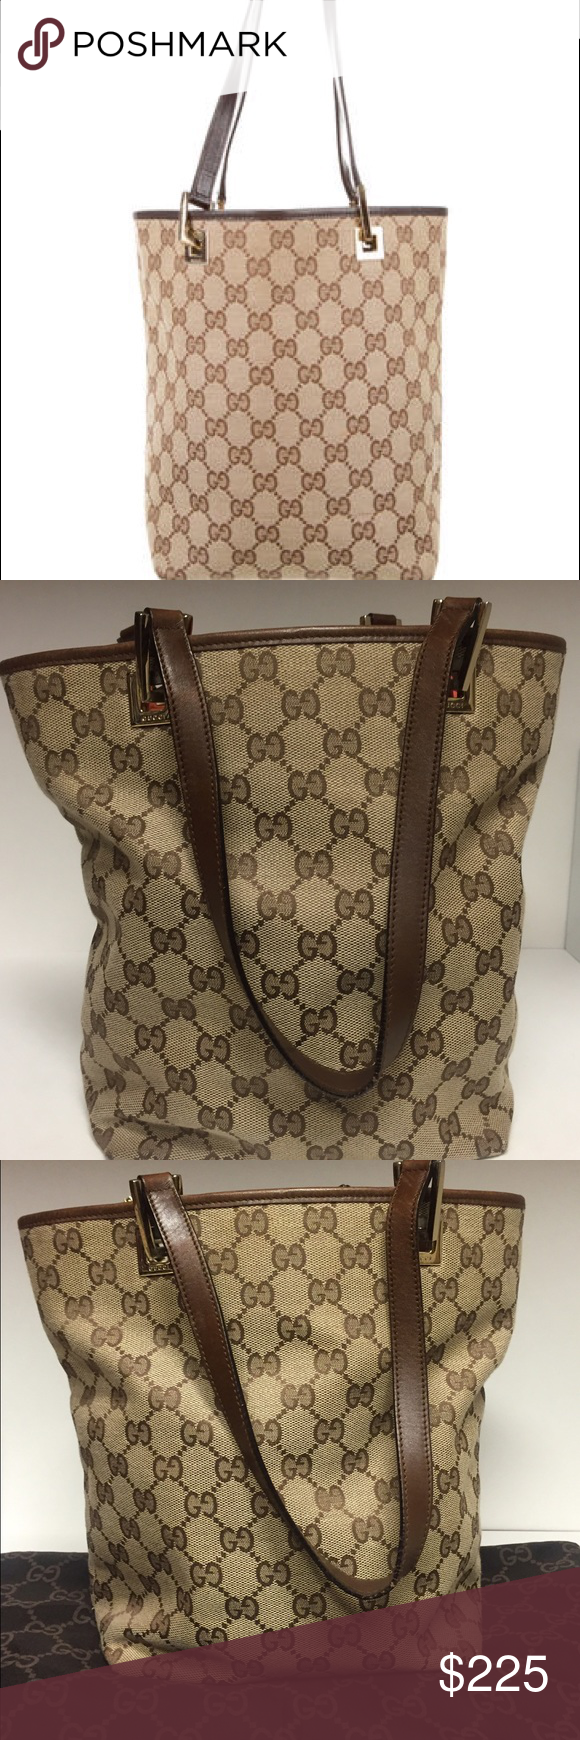 27d35cdda0e Gucci GG canvas small tote. Serial   0021099002058 It s brown and tan canvas  fabric with the GG. It has gold hardware and 2 flat brown leather straps.